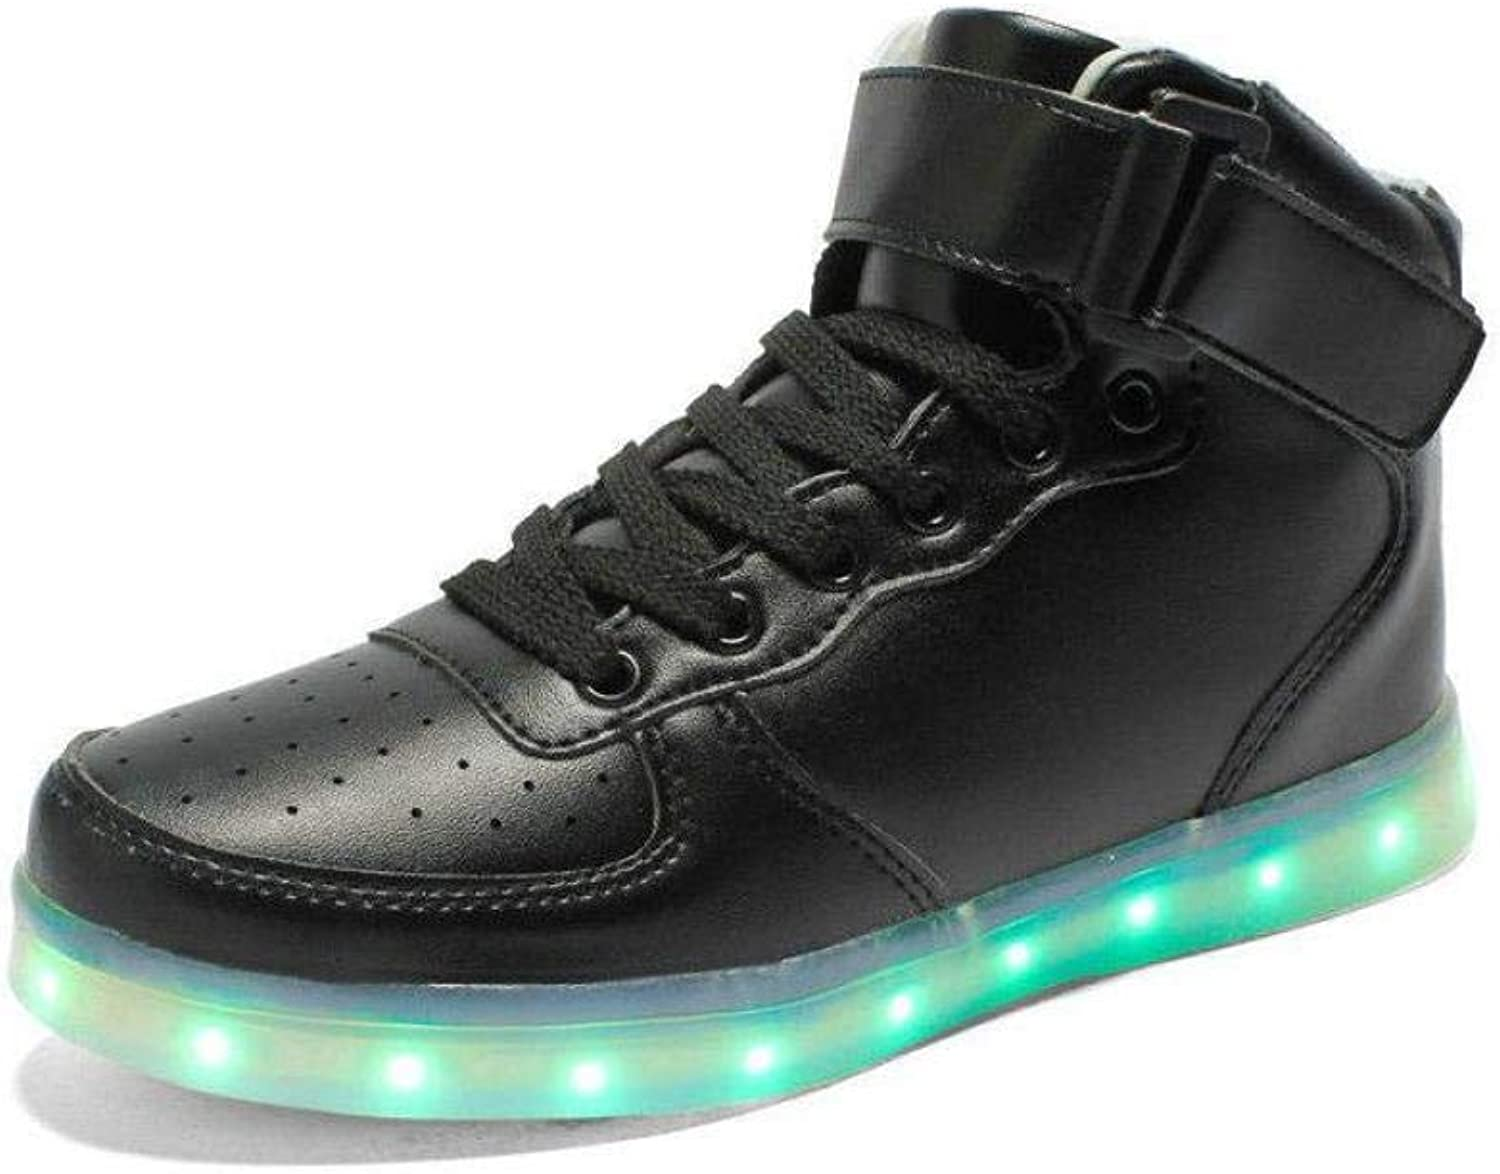 FidgetFidget Women Men LED shoes Night Light Sport Sneaker Black (High Top) EU42=US9=UK8